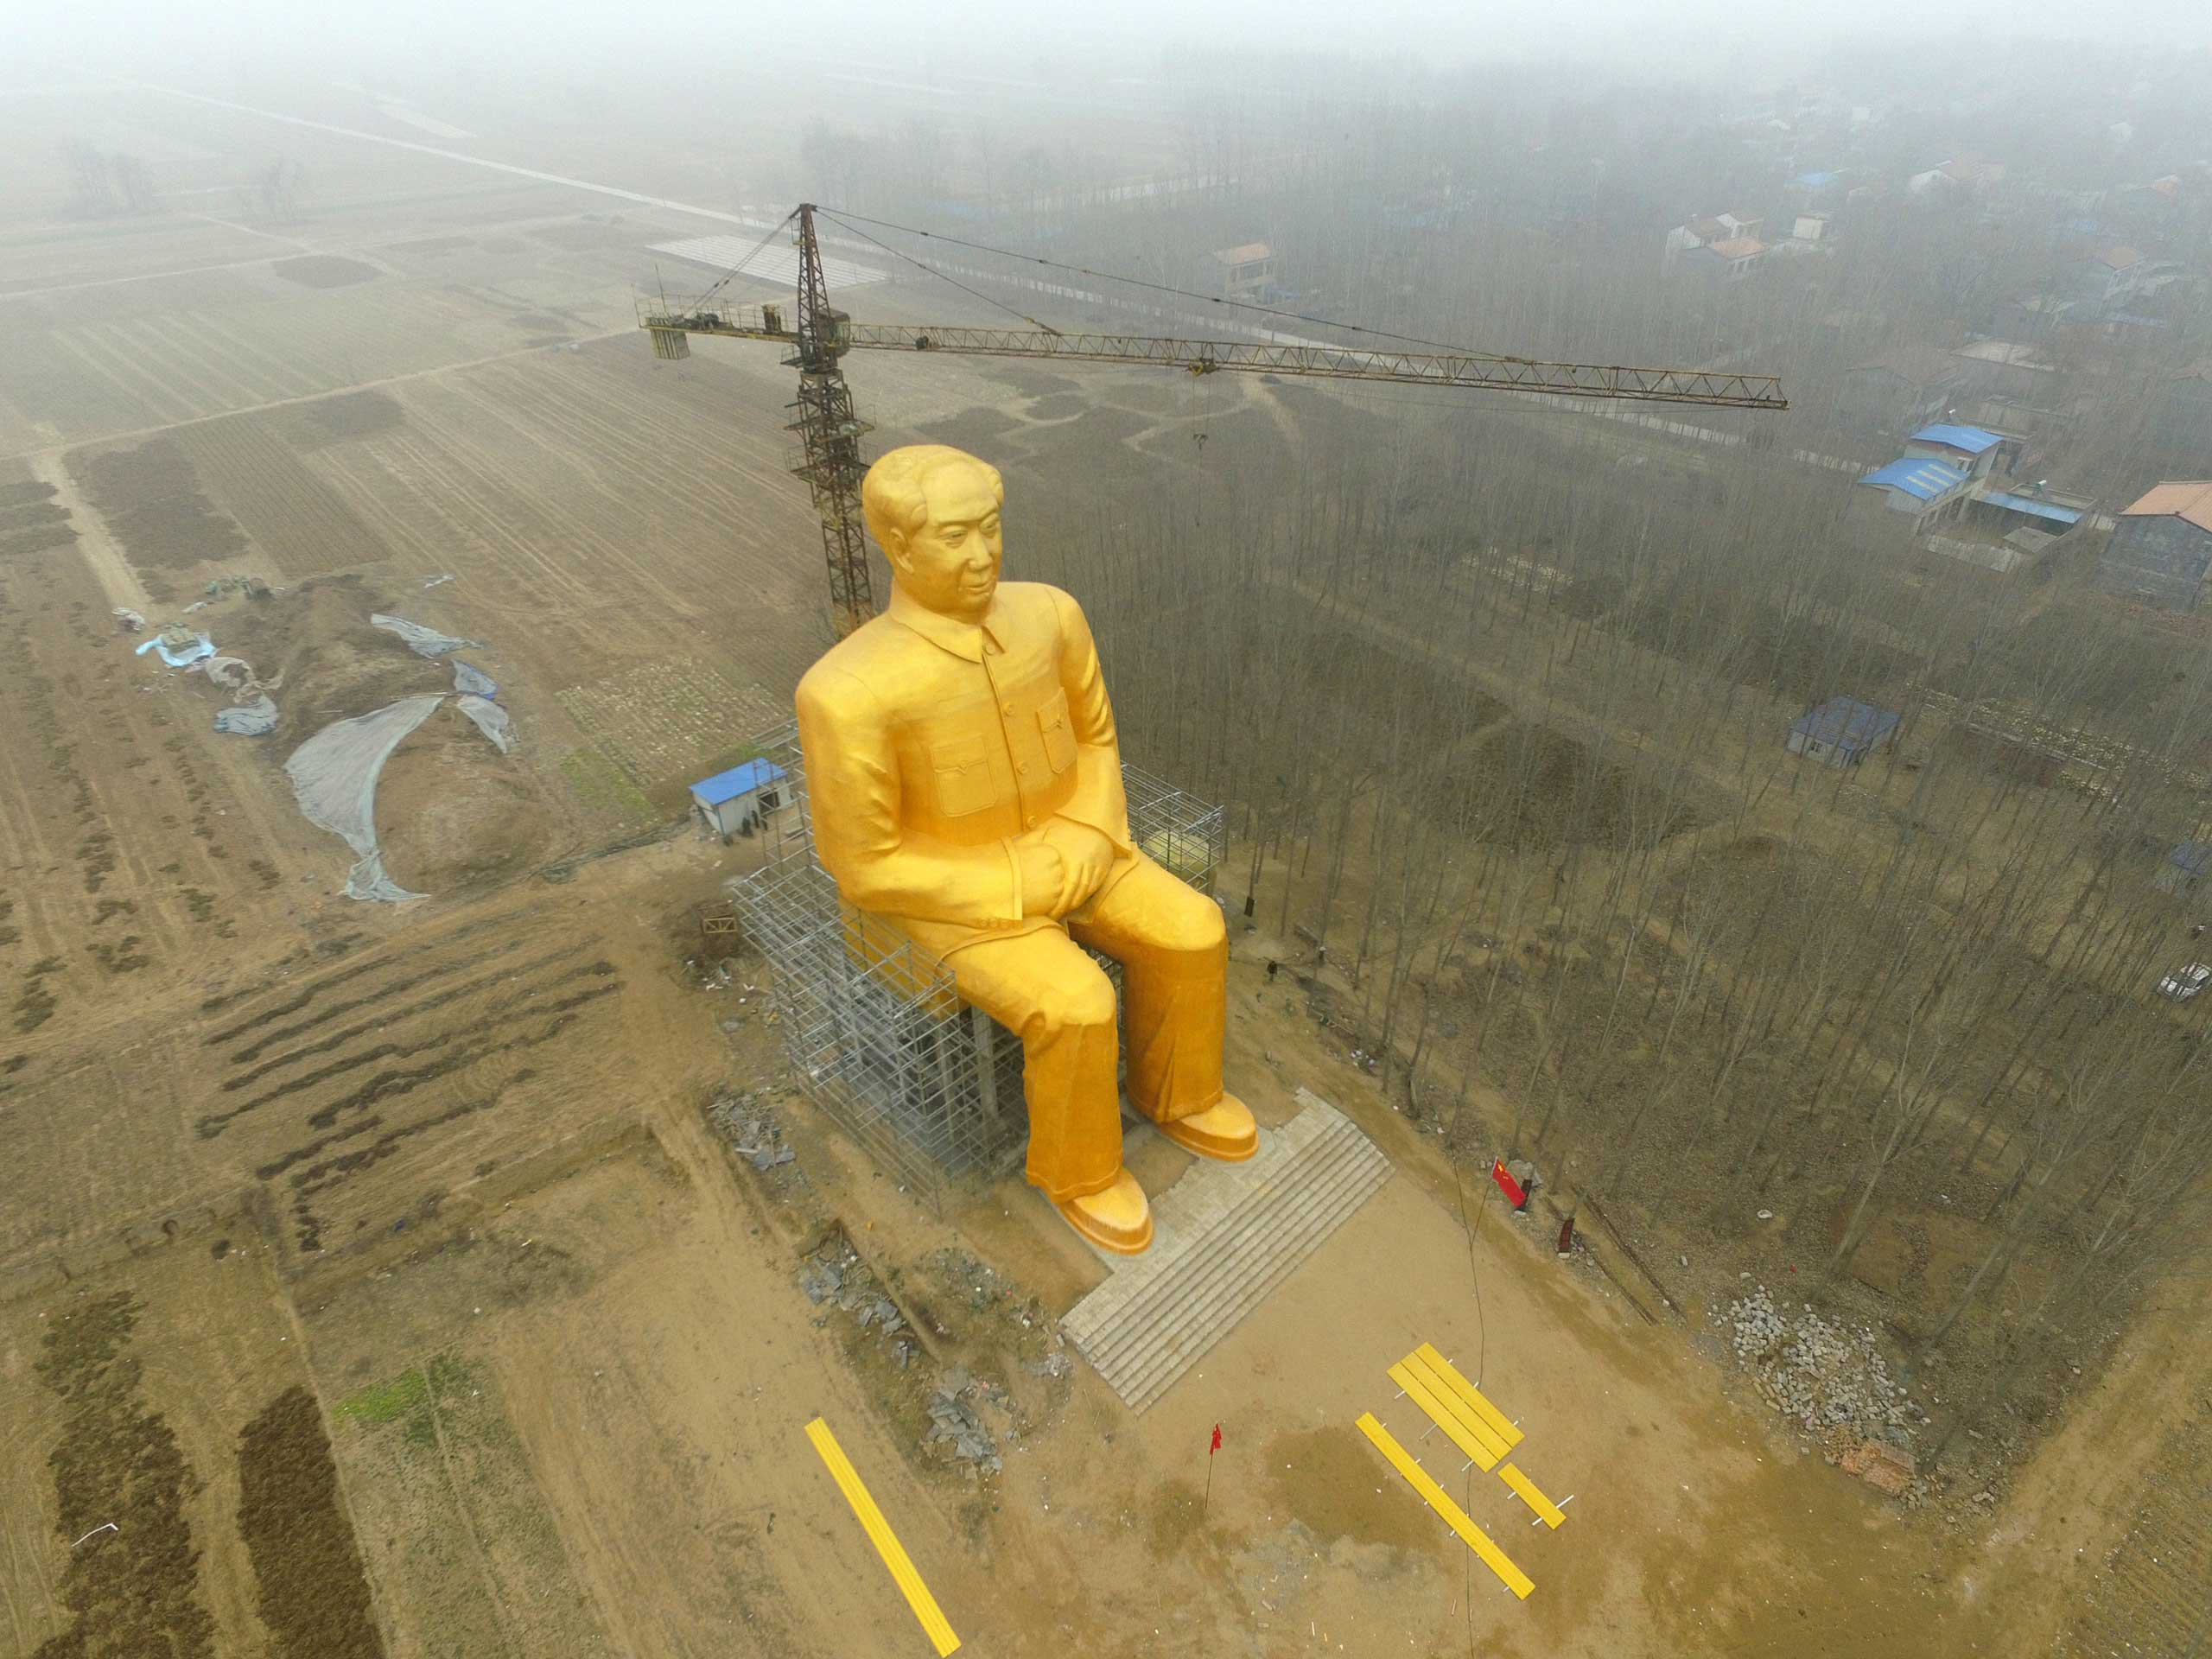 A huge statue of Chairman Mao Zedong, 36.6 meters in height, is seen under construction at Zhushigang village in Tongxu County, China, on Jan. 4.